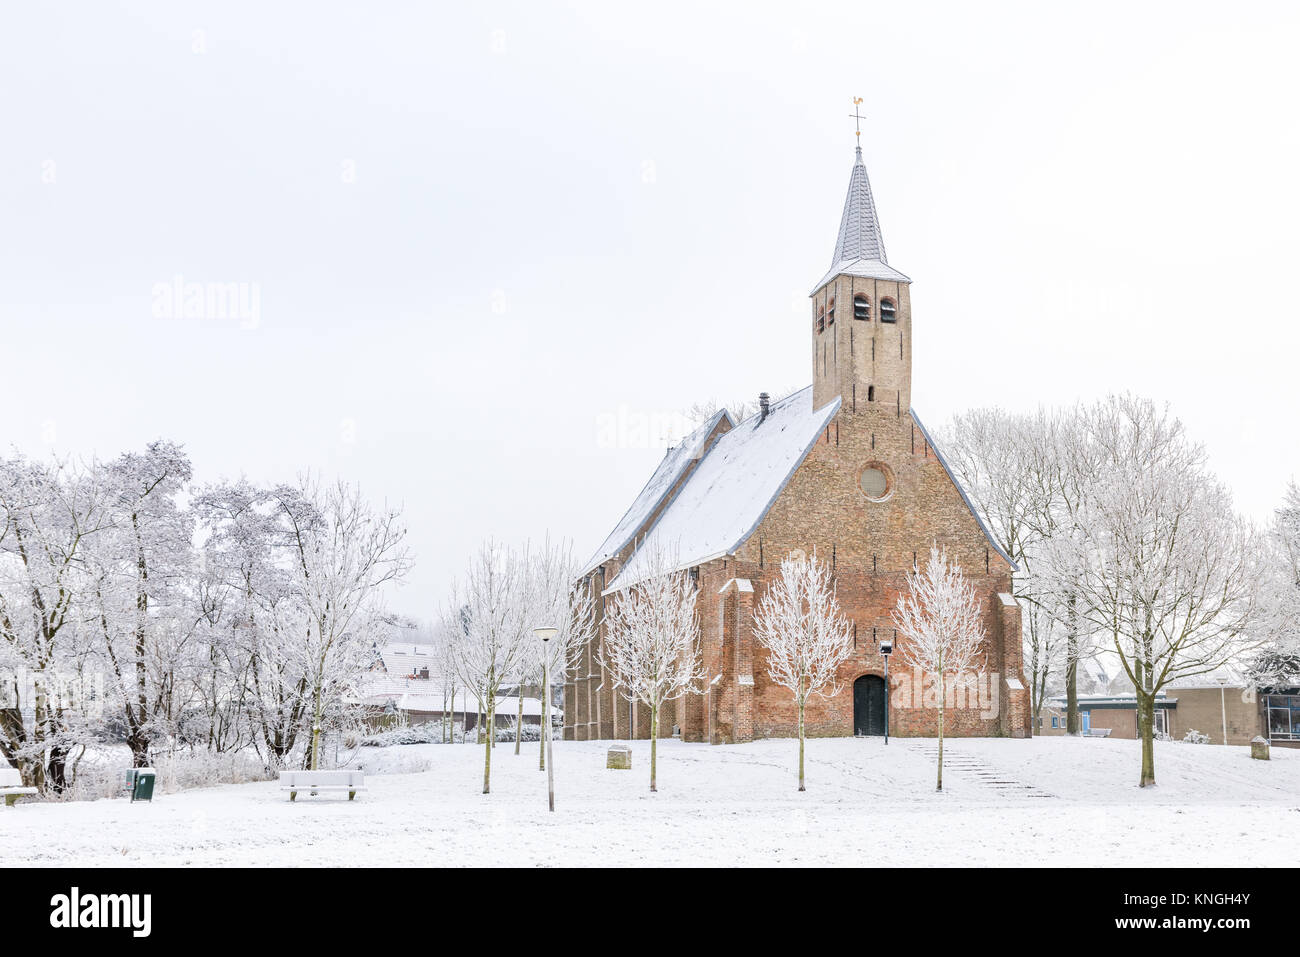 The historical Martinus church in Zwartewaal in the Netherlands during winter with snow and hoarfrosted trees. - Stock Image